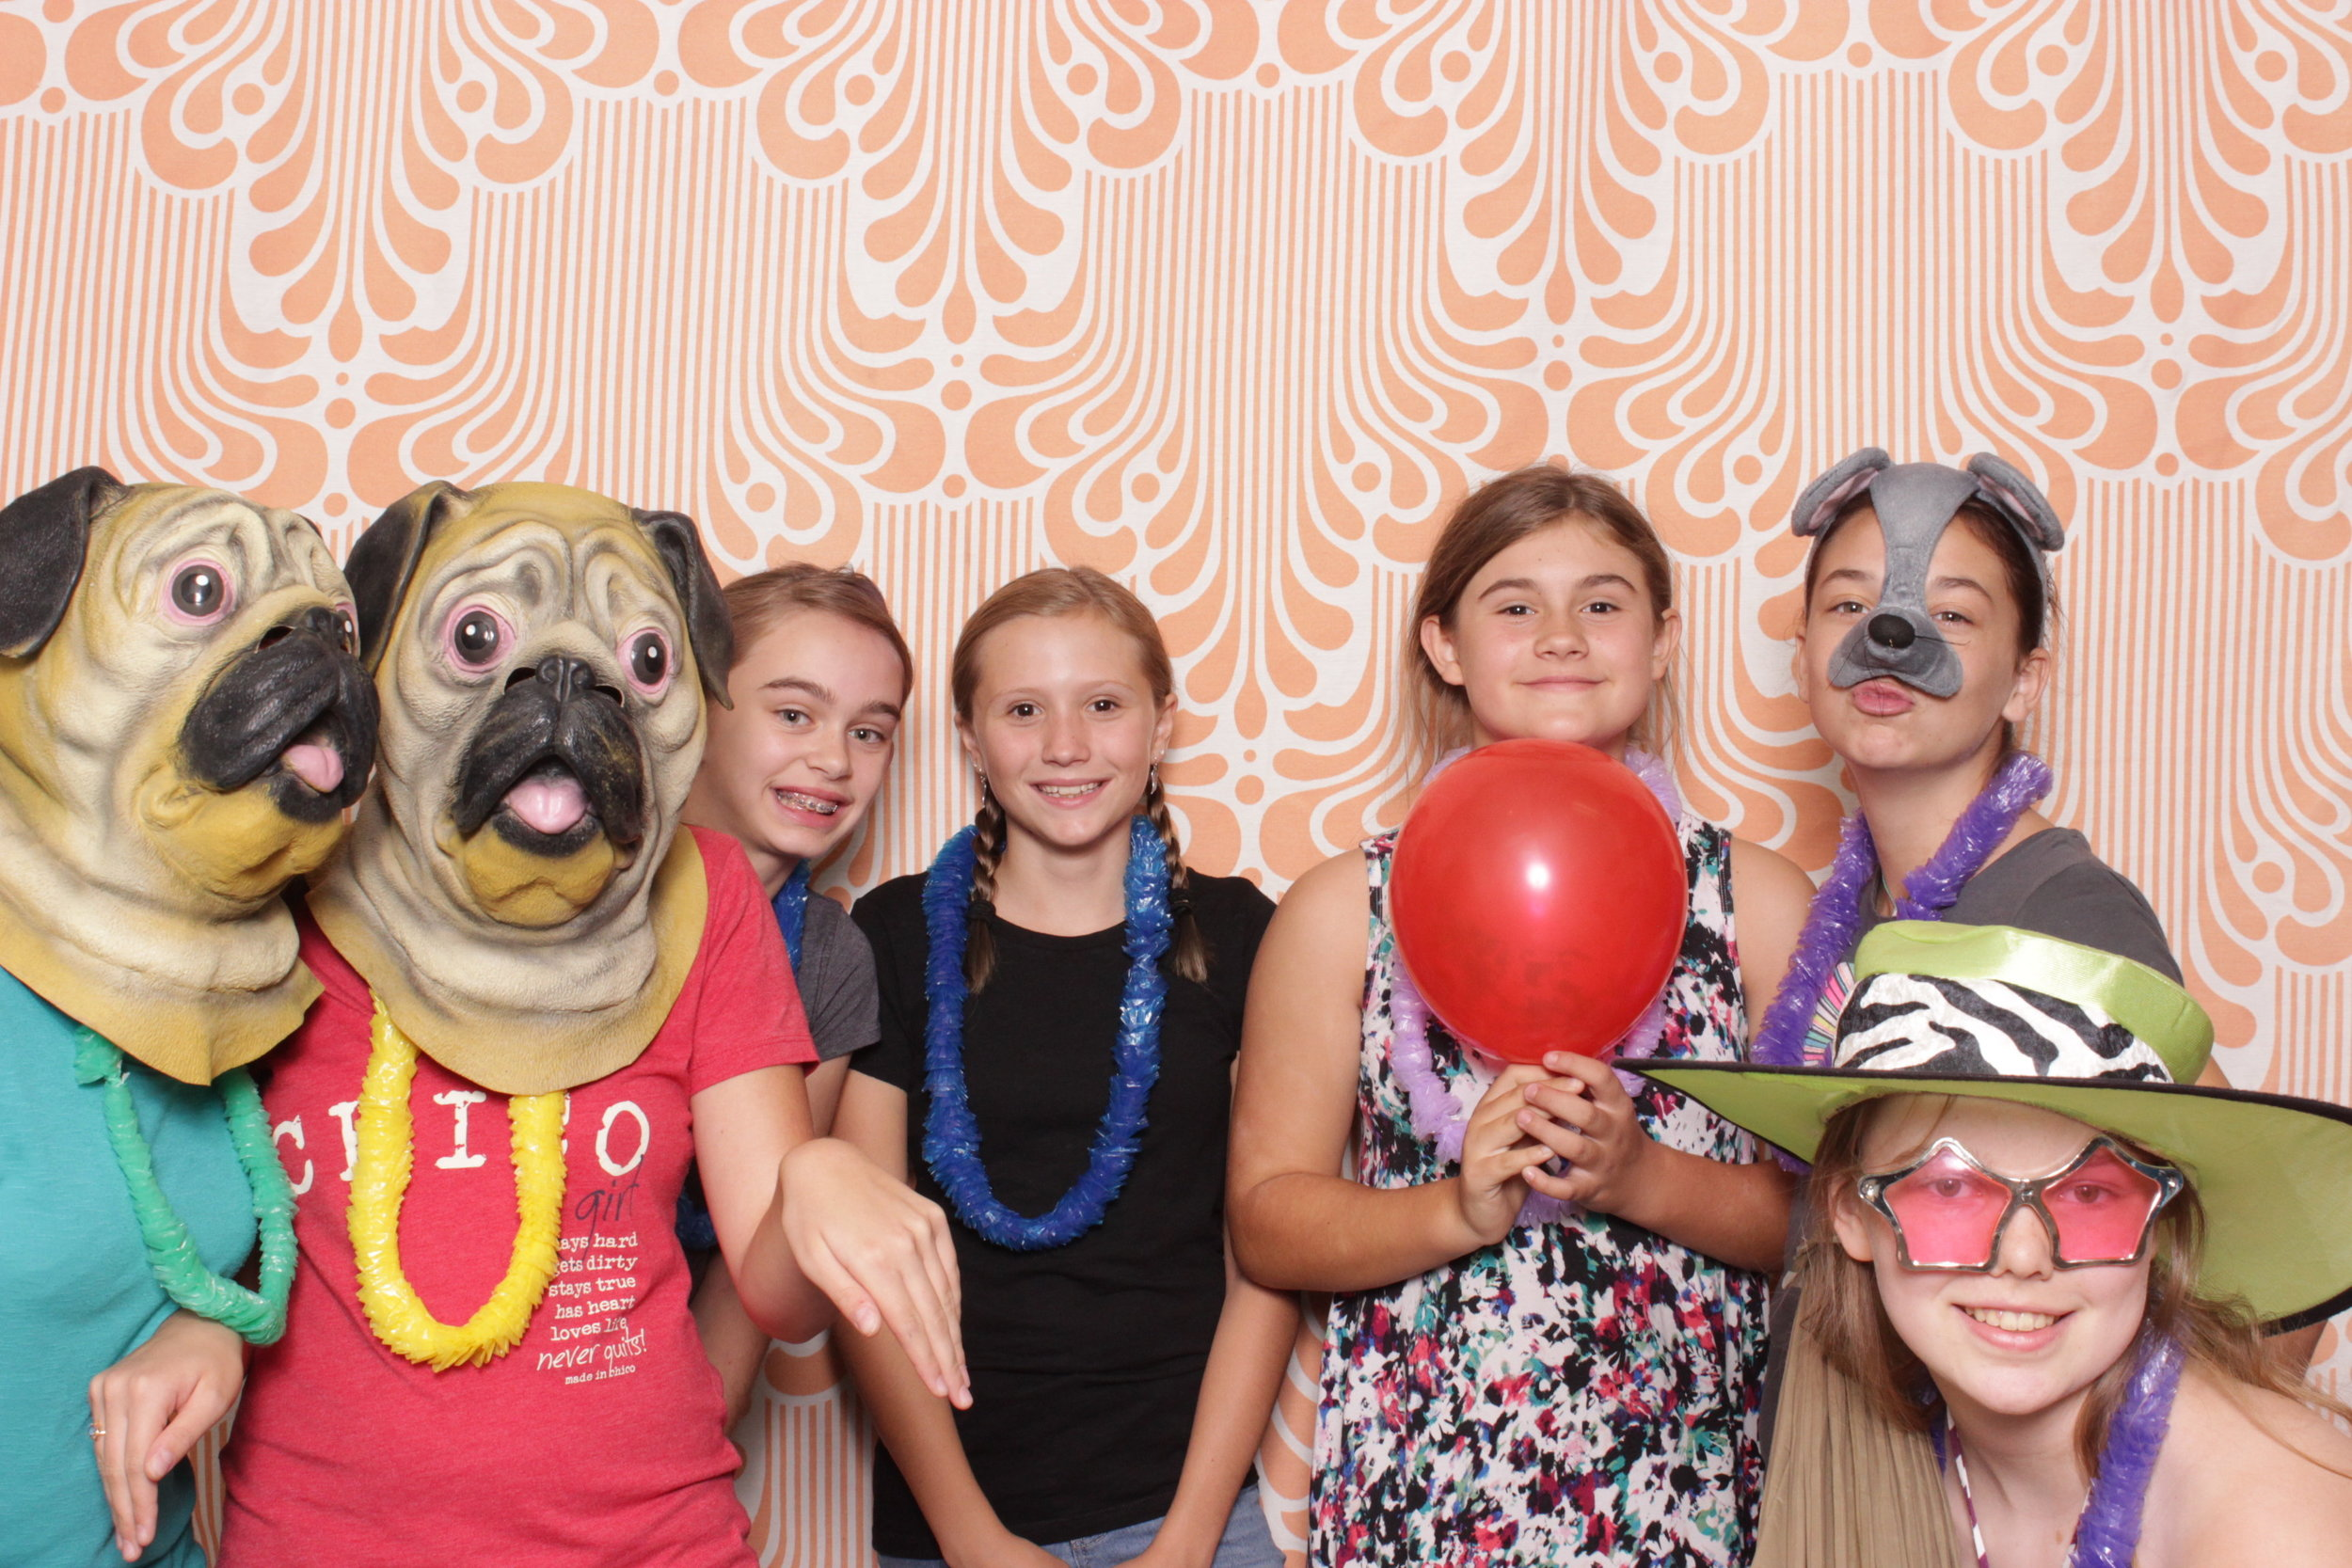 Infinite-hawaiian-luau-party-photo-booth-rental-chico-twin-pugs